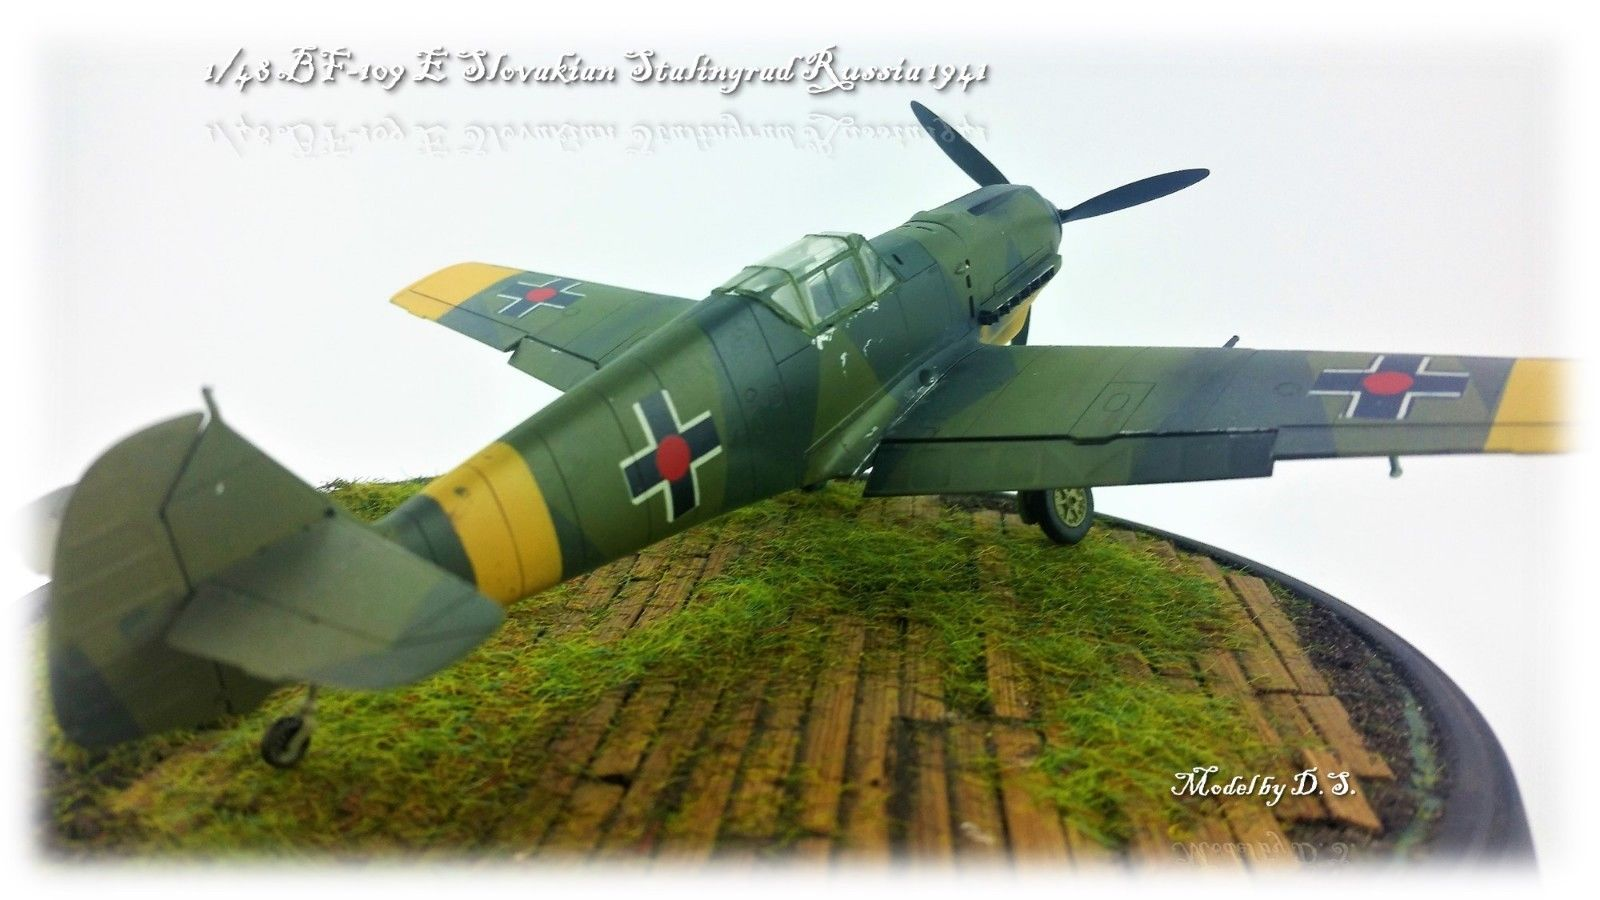 BF 109E-3 14 Squadron Slovak Eastern Front 1942